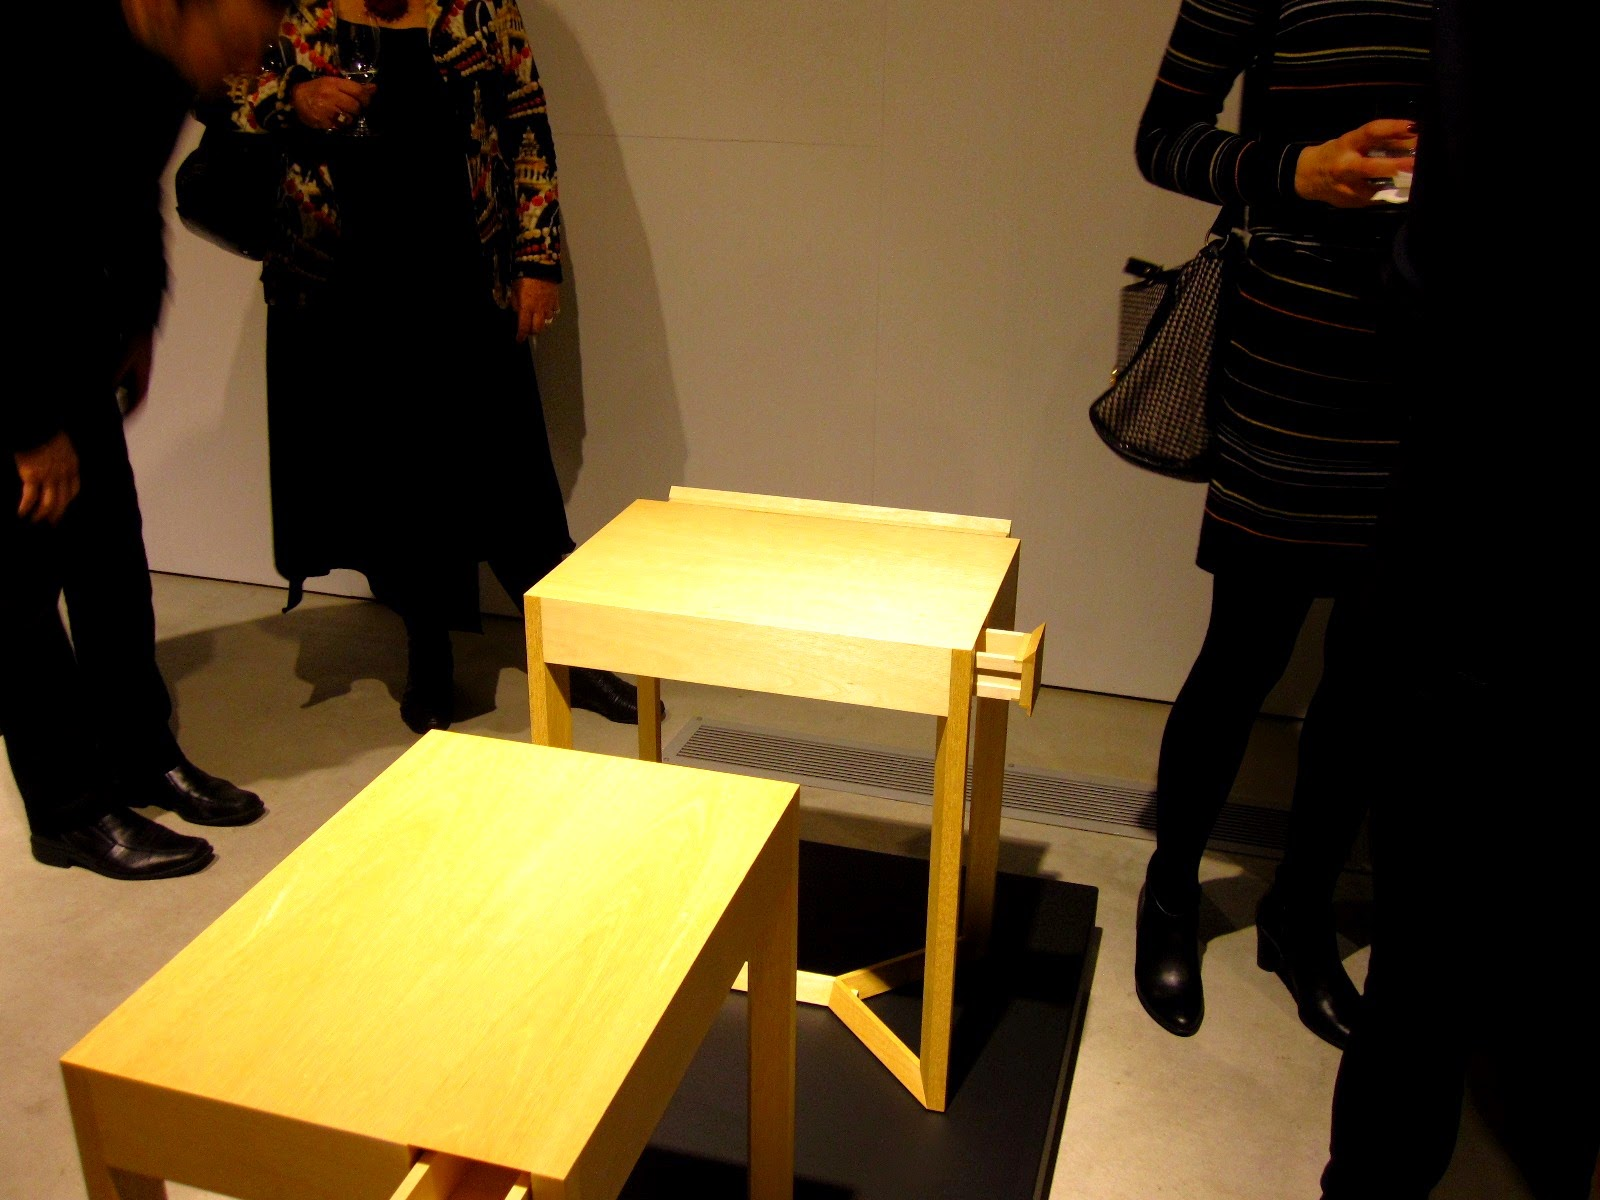 People at an exhibition opening, looking at two small wooden side tables.